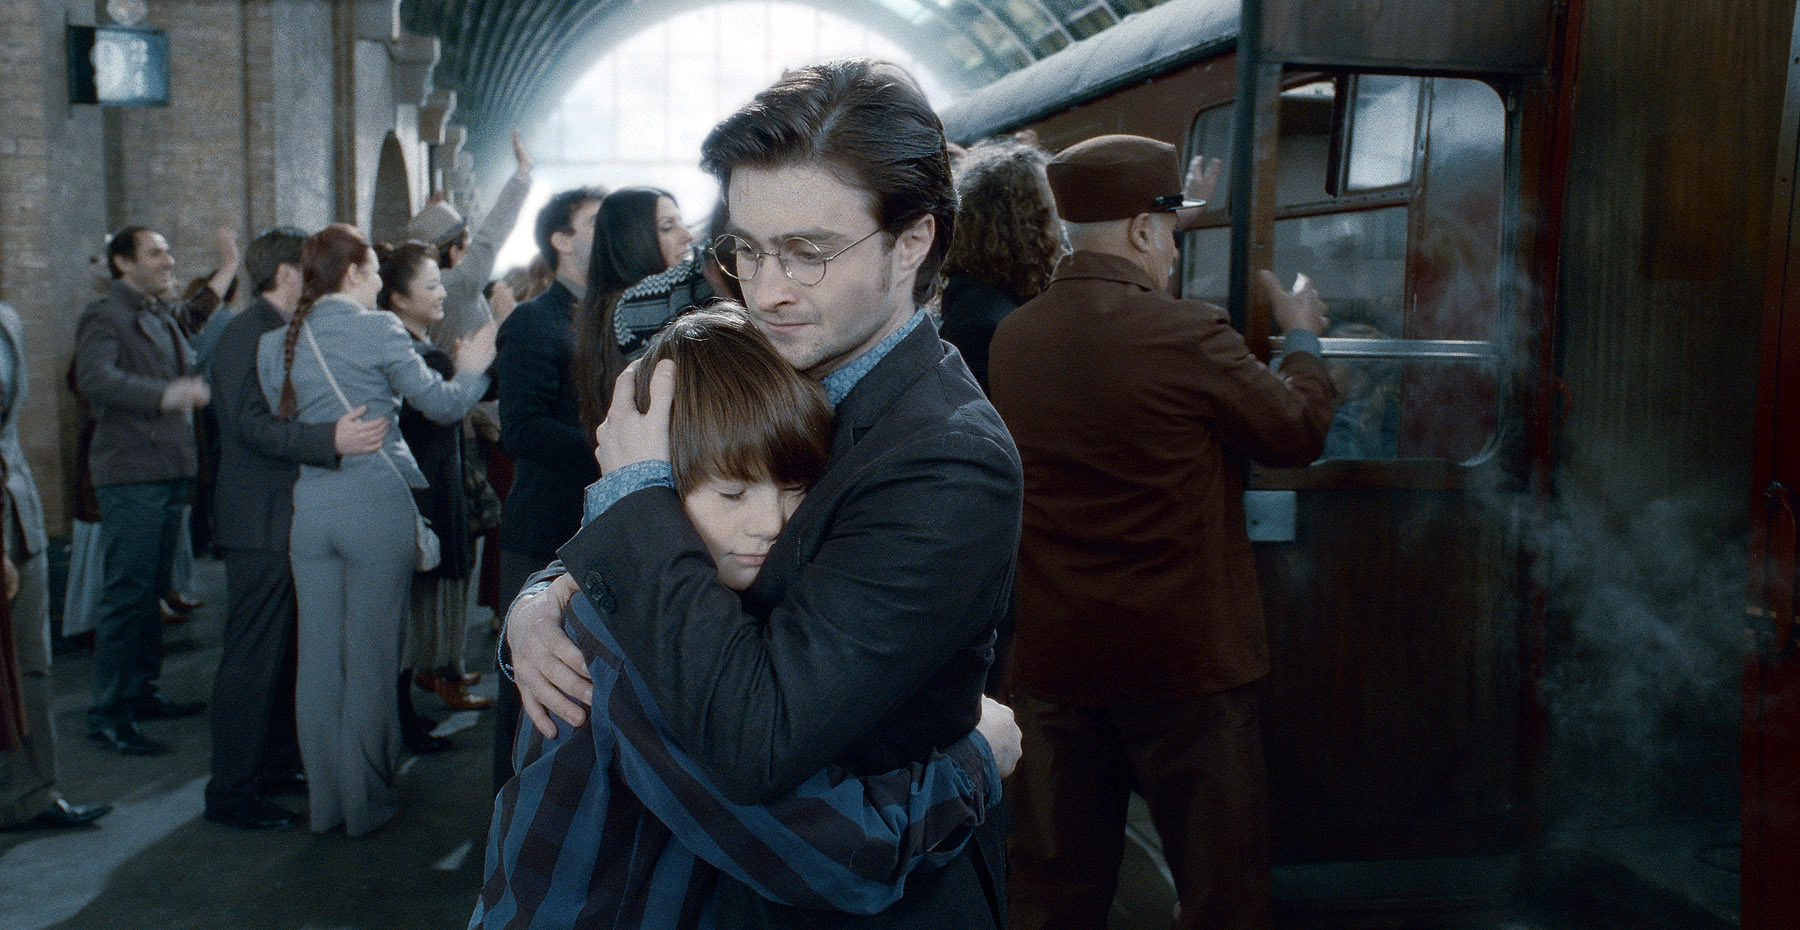 """SUNDAY CALENDAR AUGUST 7, 2011. DO NOT USE PRIOR TO PUBLICATION ******************** ARTHUR BOWEN as Albus Severus Potter (19 years later)  and DANIEL RADCLIFFE as Harry Potter in Warner Bros. Pictures' fantasy adventure movie """"HARRY POTTER AND THE DEATHLY HALLOWS - PART 2,"""" a Warner Bros. Pictures release. Photo courtesy of Warner Bros. Pictures"""